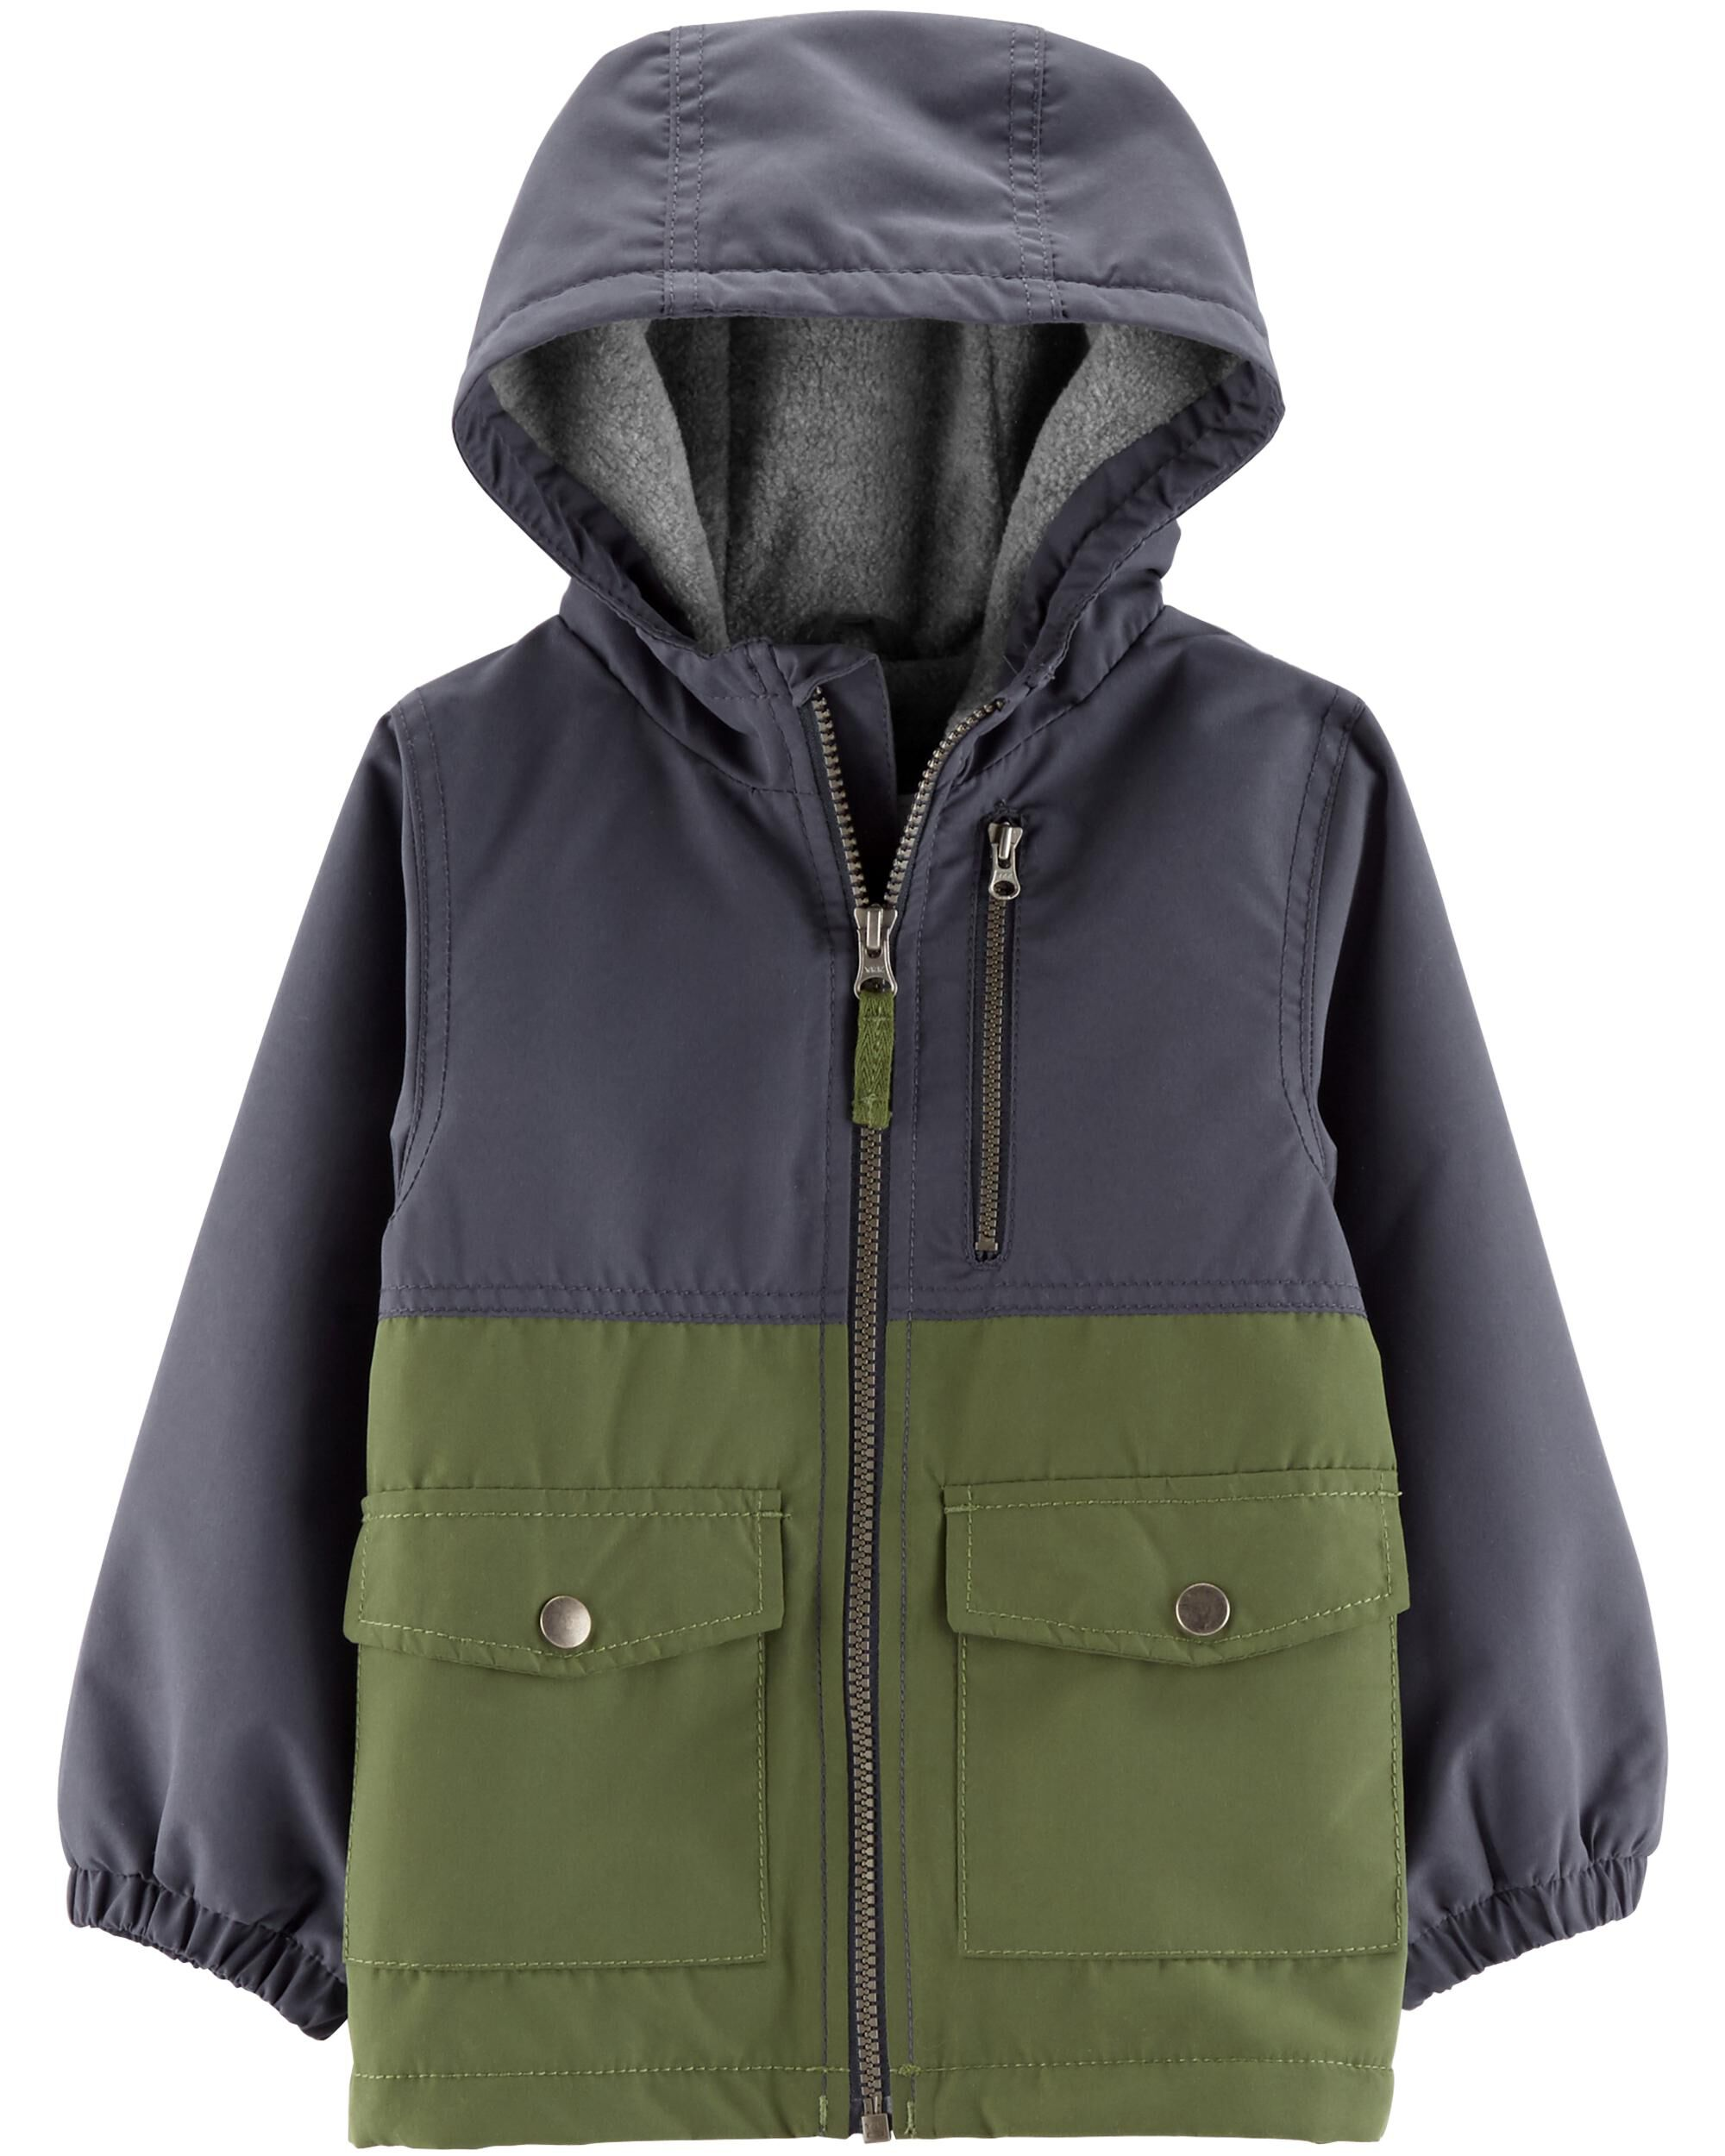 ad7895cc930d Baby Boy Fleece-Lined Jacket